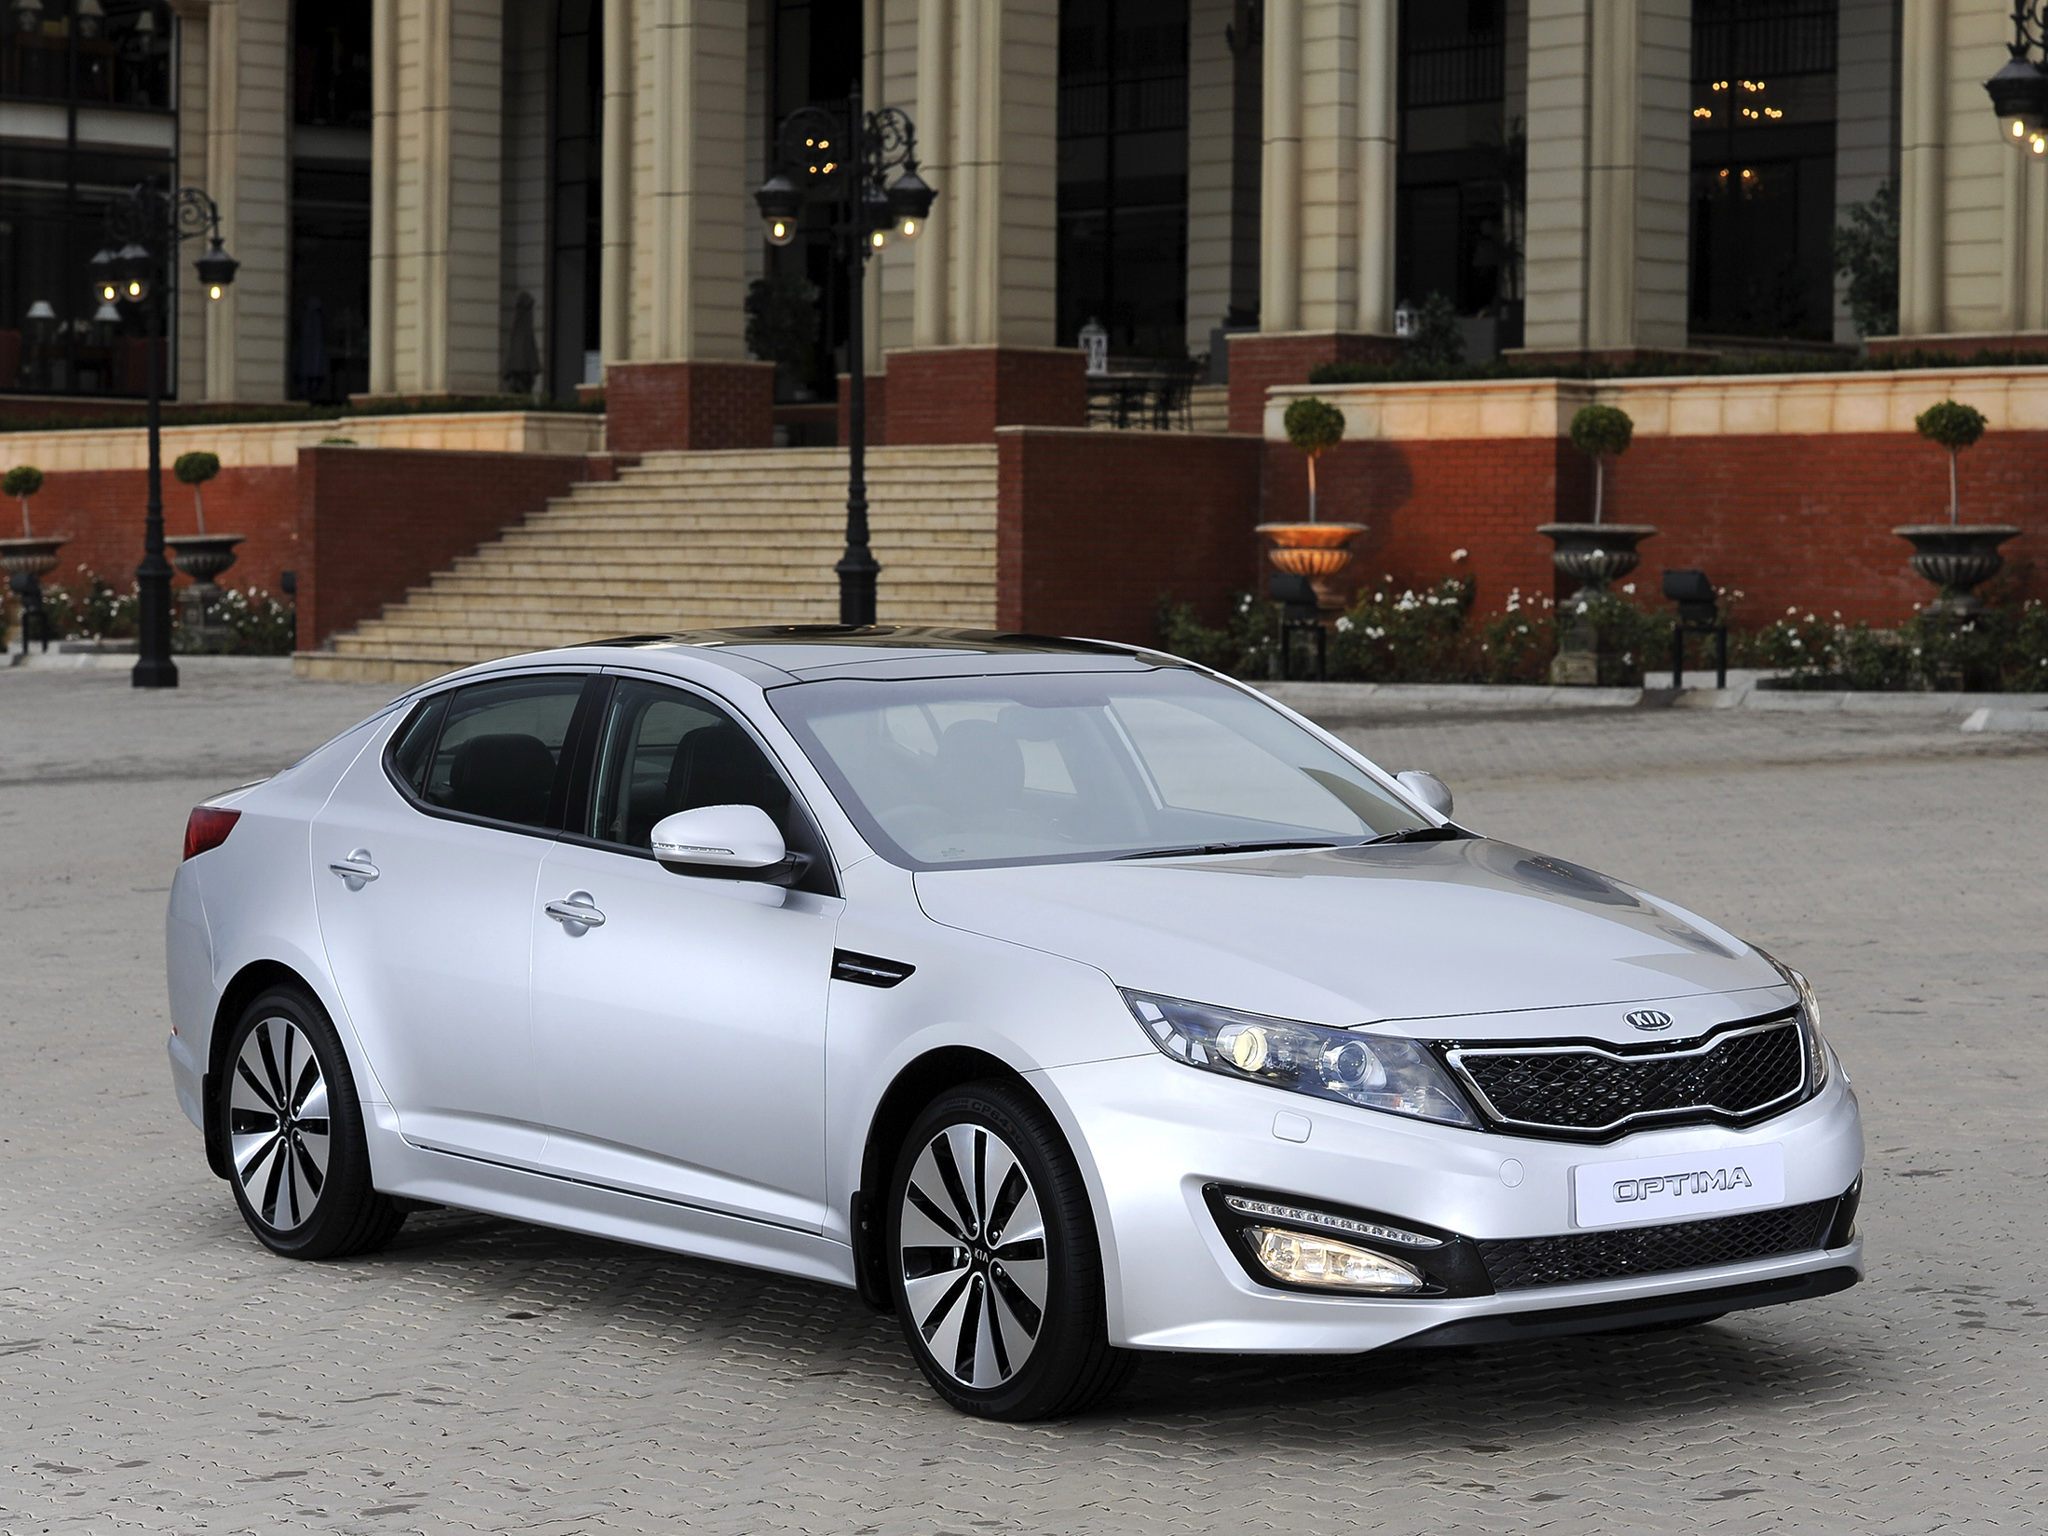 Kia Optima photo 91121